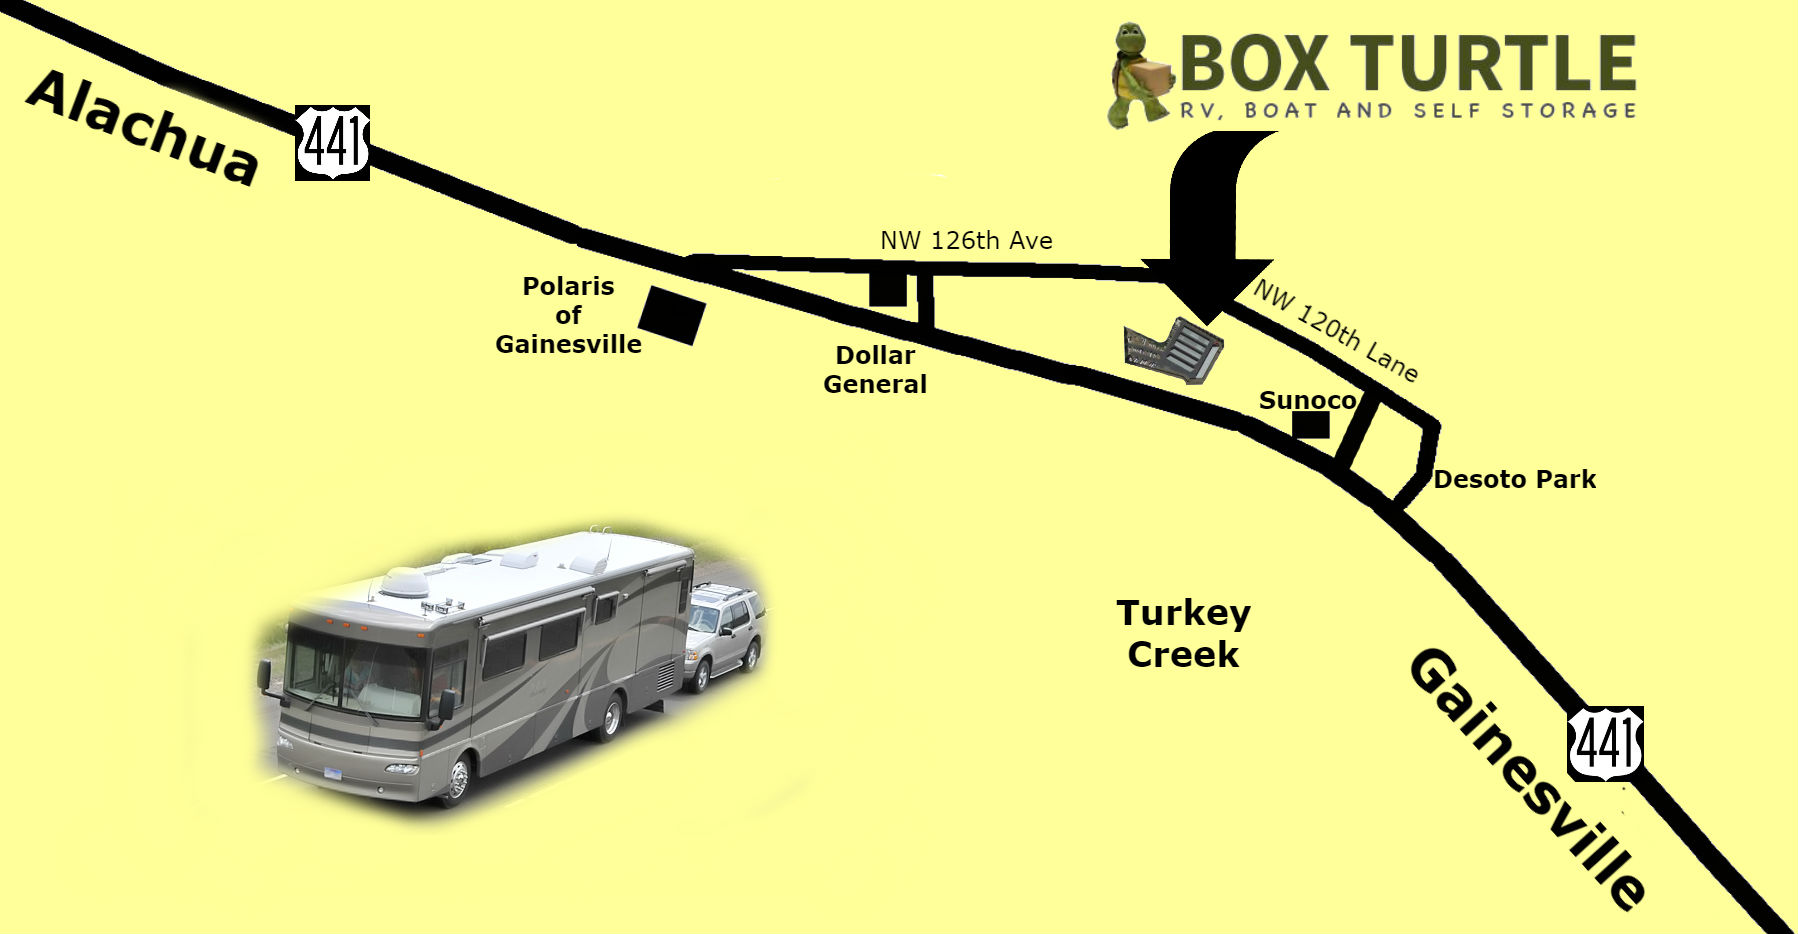 Serving Alachua and Gainesville, on 120th lane, north and parallel to hwy 441, between the Dollar store and Sunoco